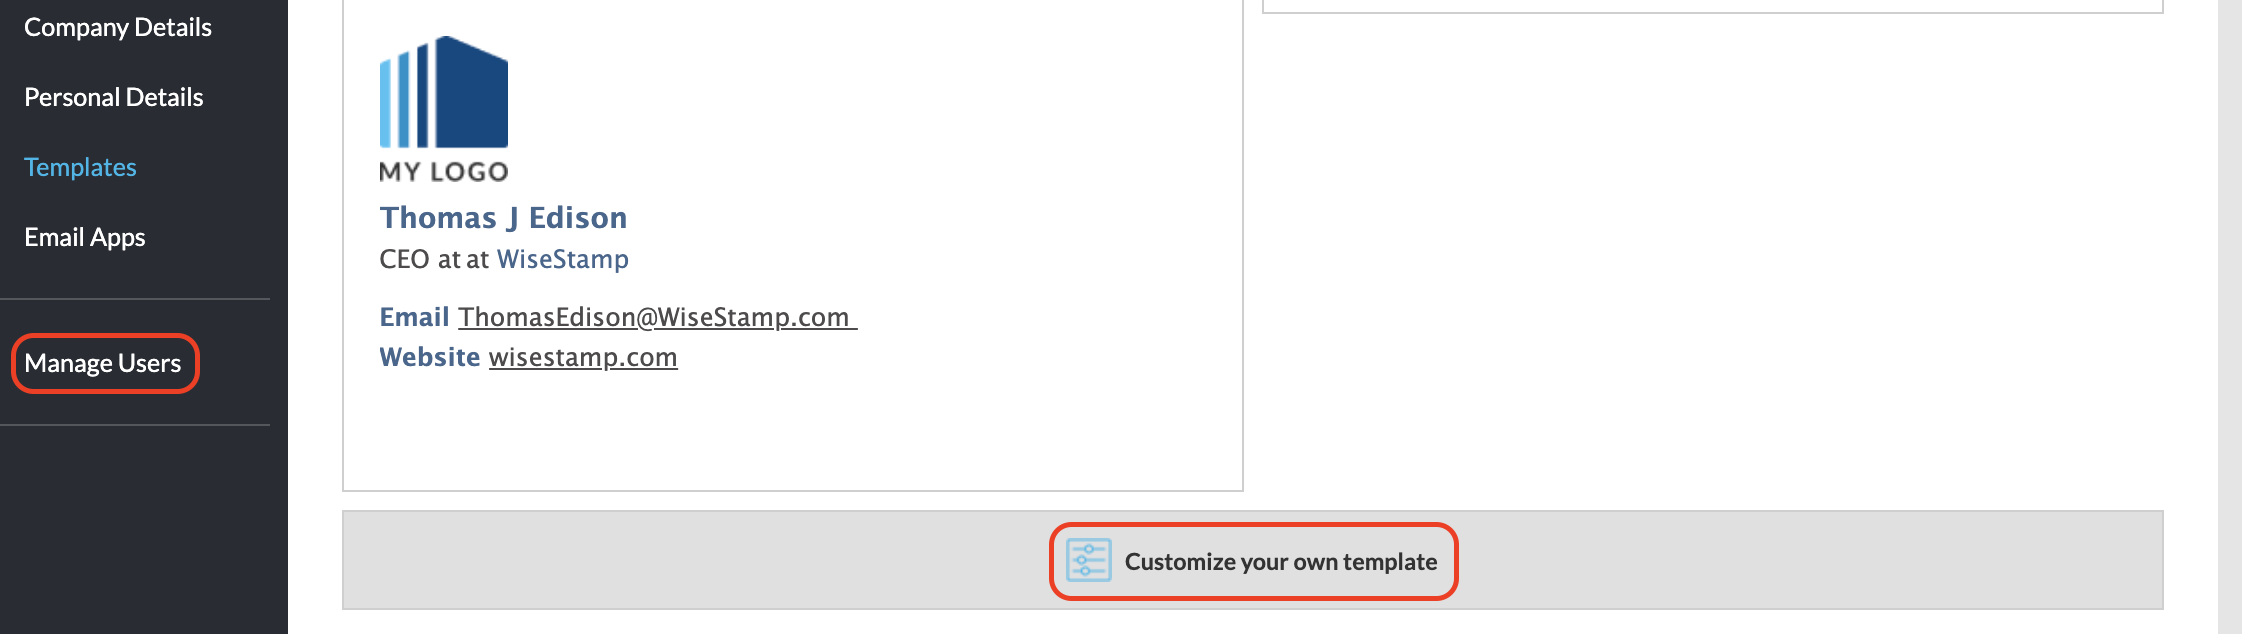 Screenshot of the Templates tab in the WiseStamp editor showing the customize your own template option